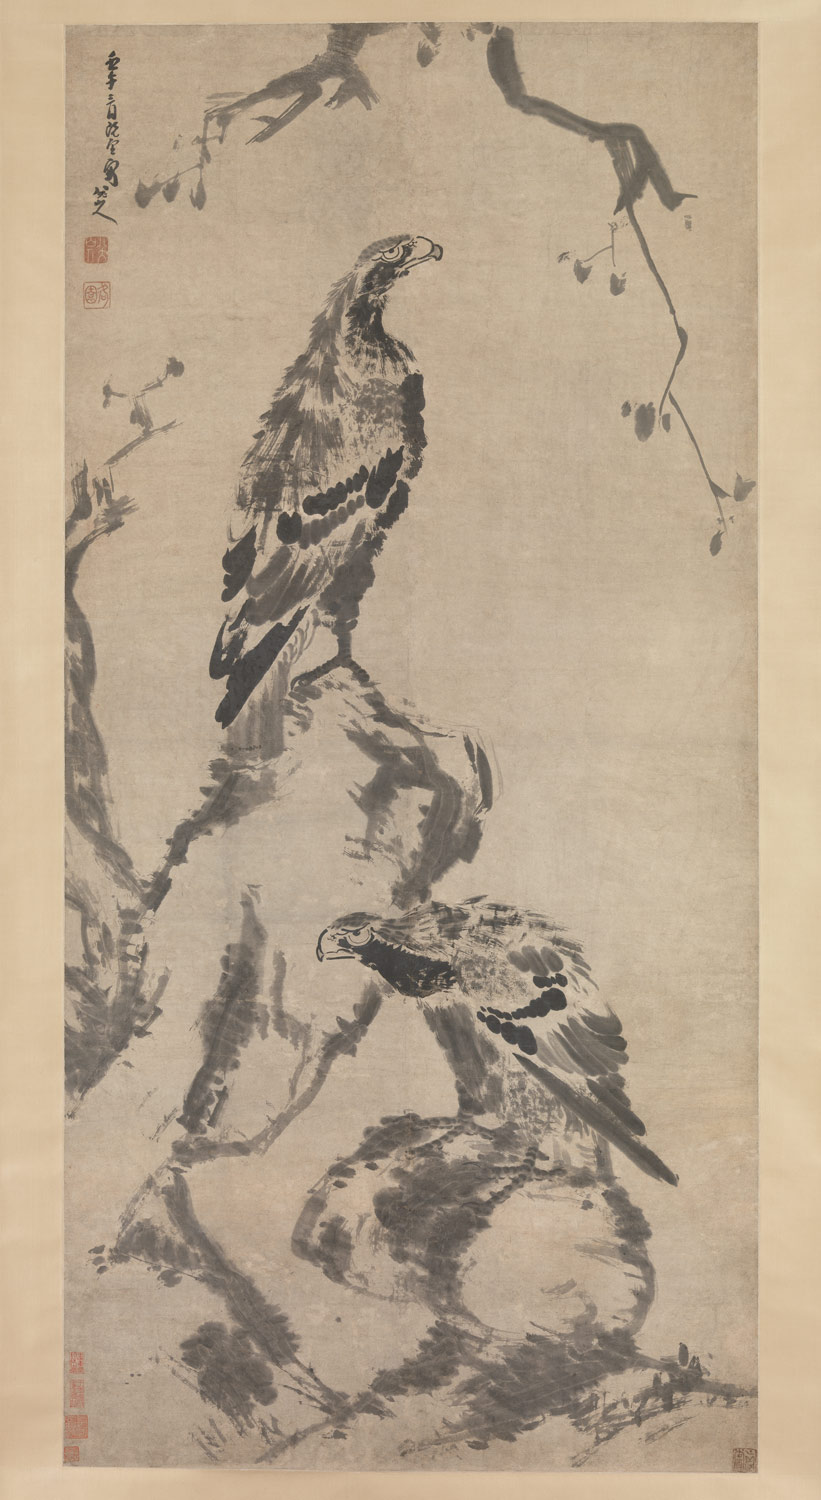 chinese painting essay heilbrunn timeline of art history the two eagles